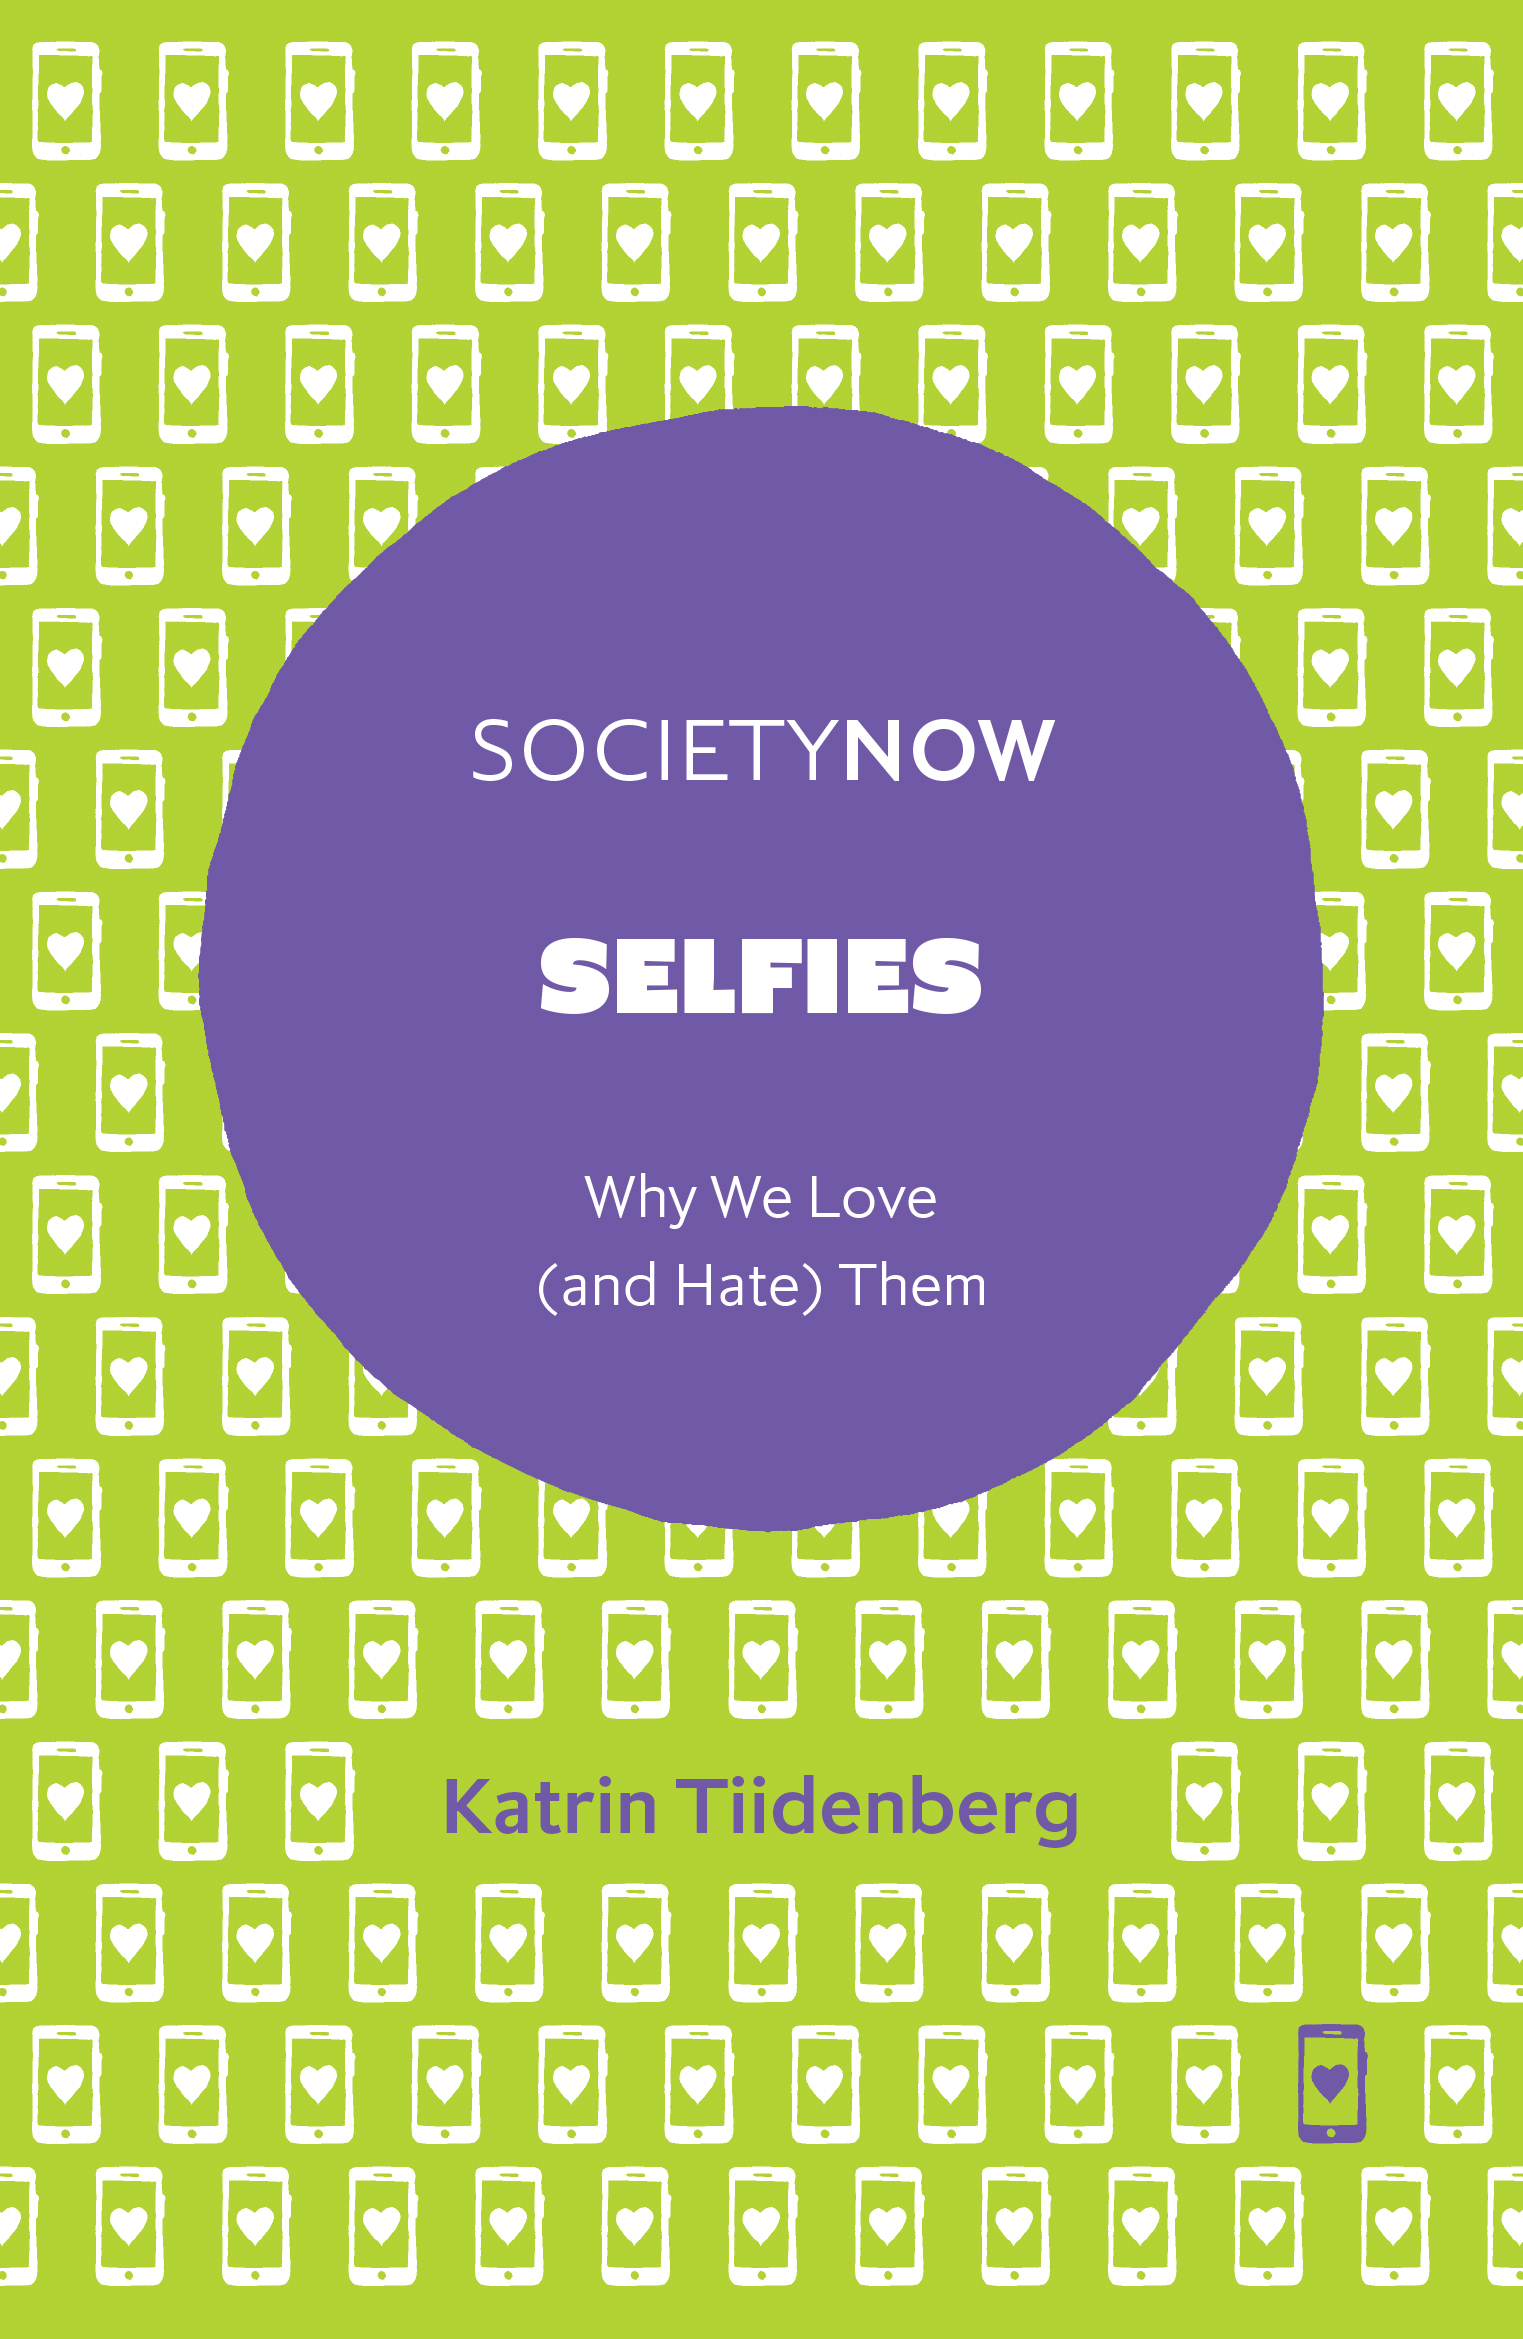 Book cover for Selfies:  Why We Love (and Hate) Them a book by Katrin  Tiidenberg